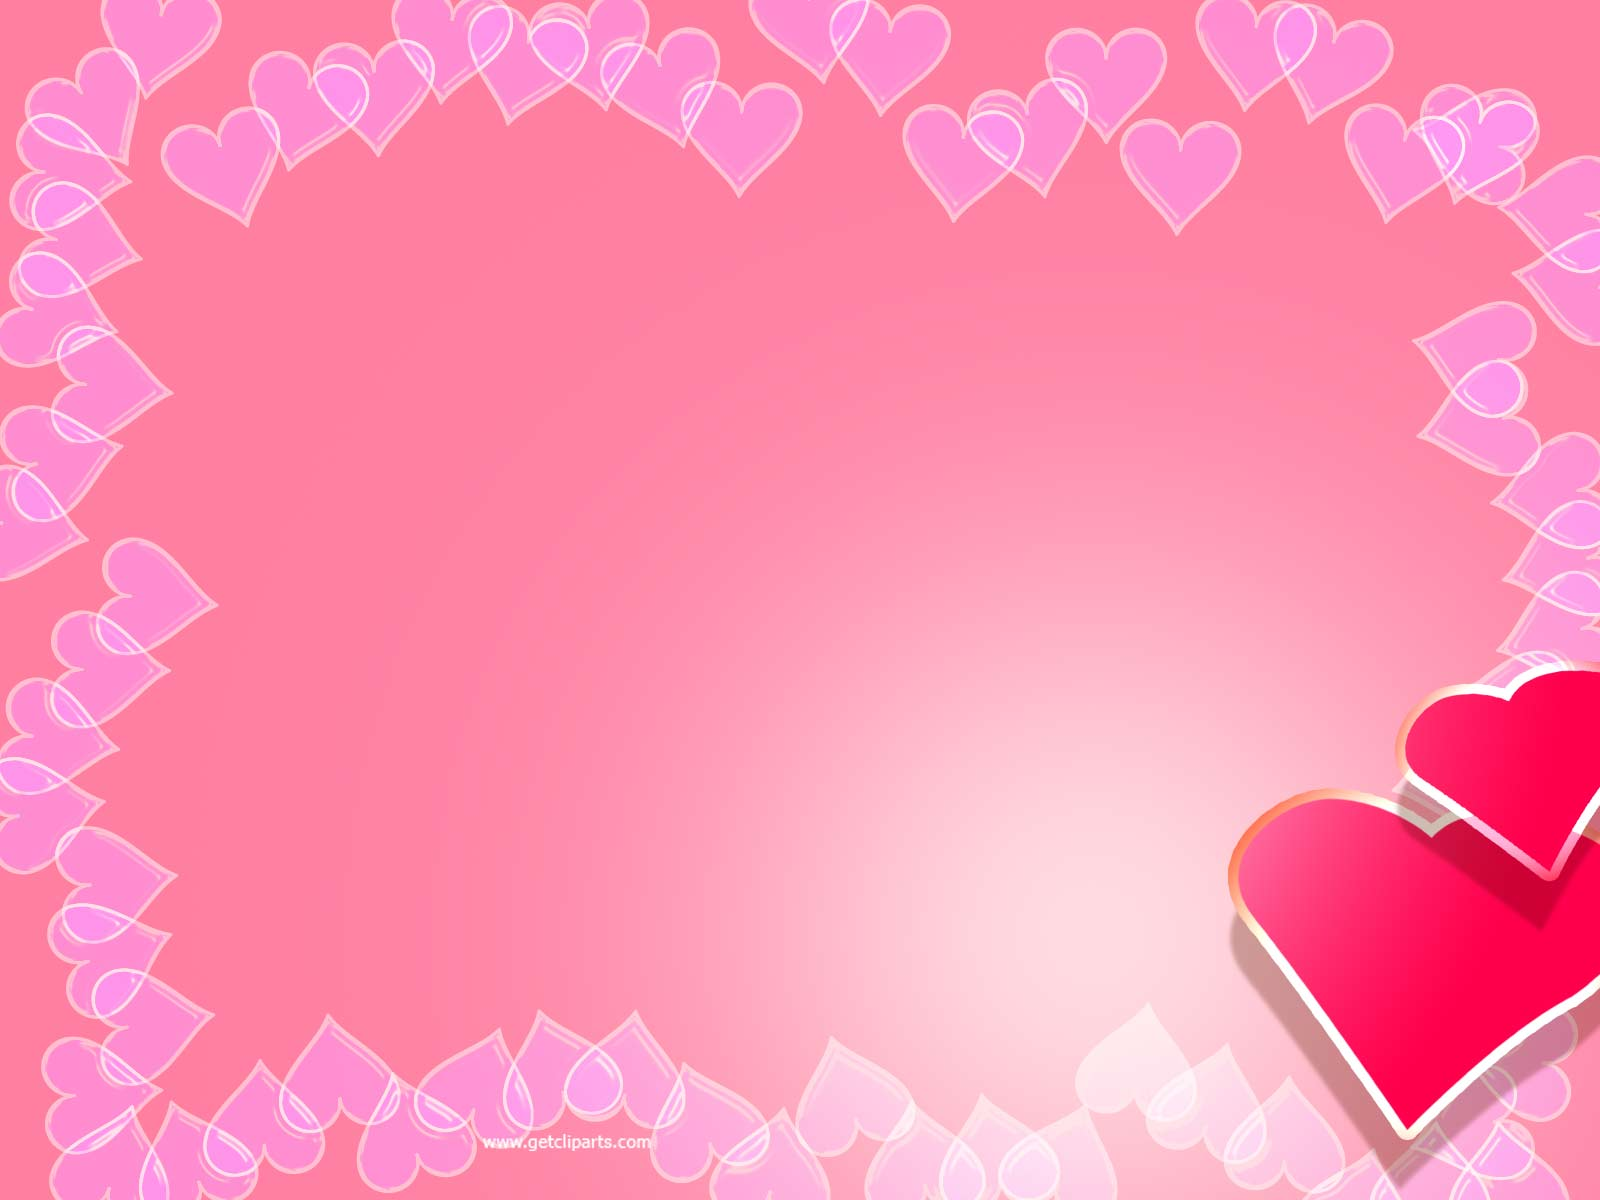 Pink Valentines Day Backgrounds 8283 Hd Wallpapers in Celebrations 1600x1200